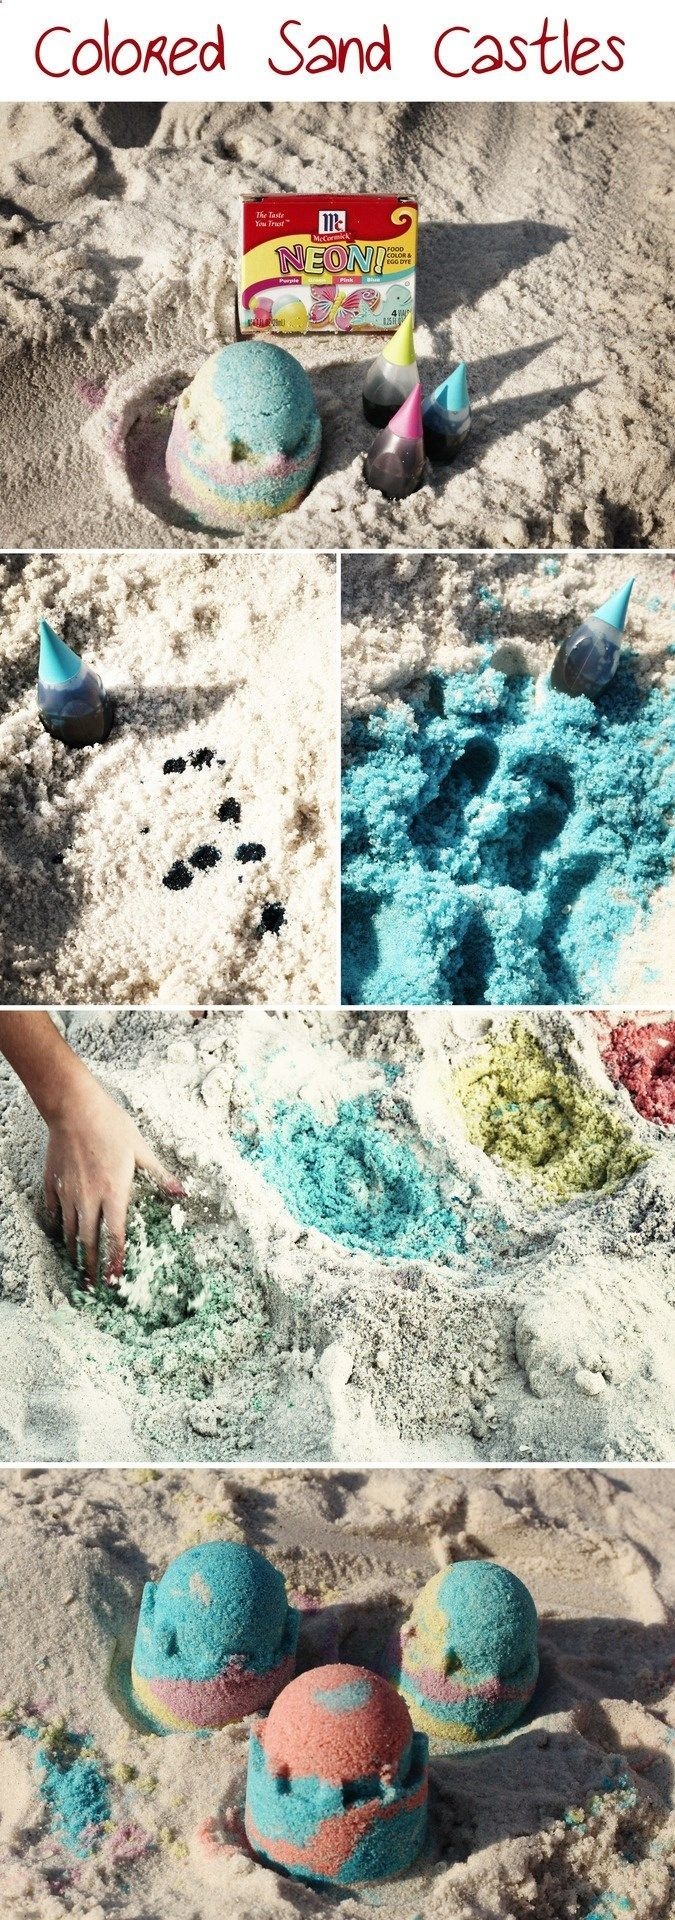 Mix a few drops of food coloring (Neon works best) in the ...